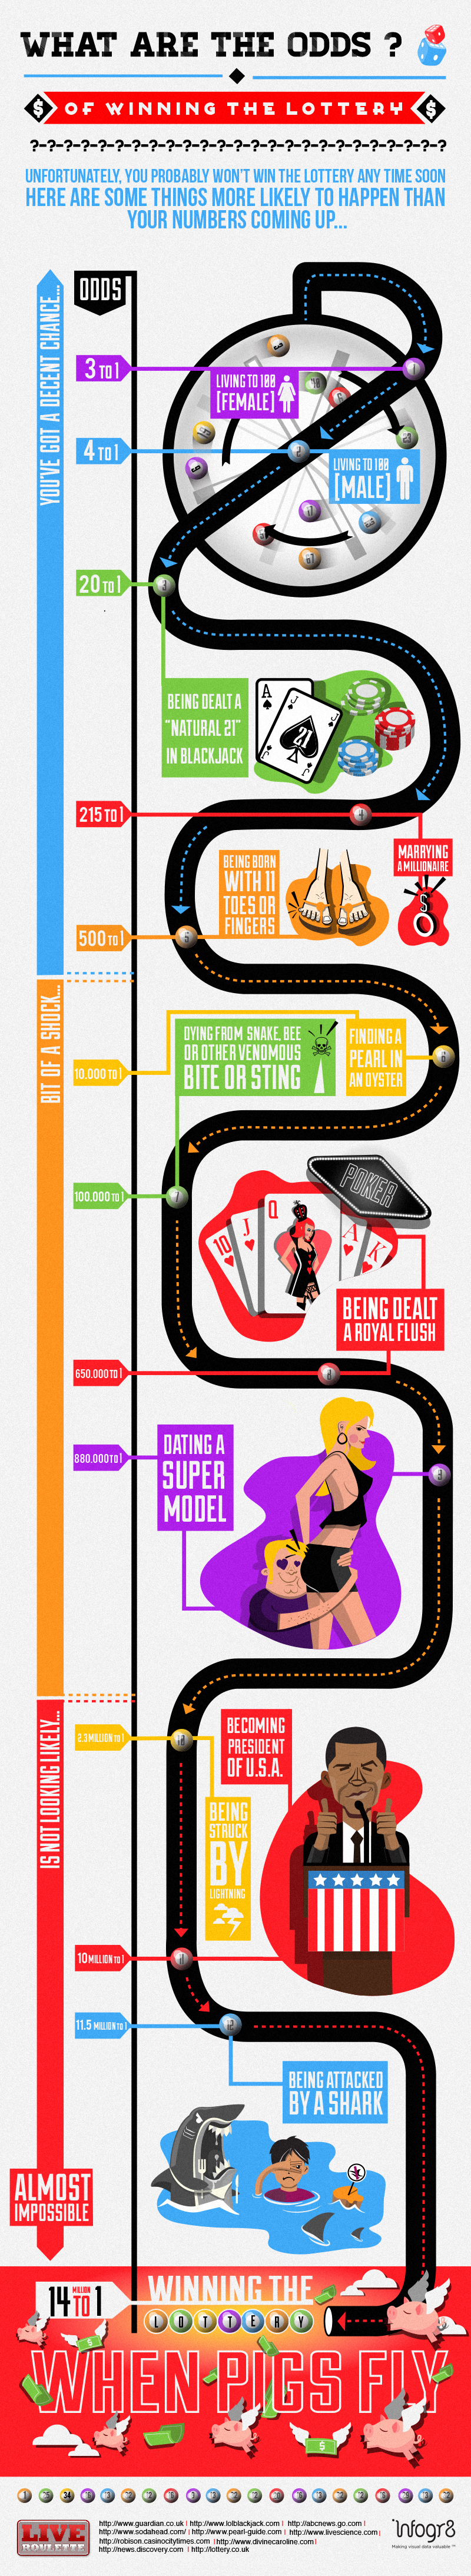 Odds of dating a supermodel